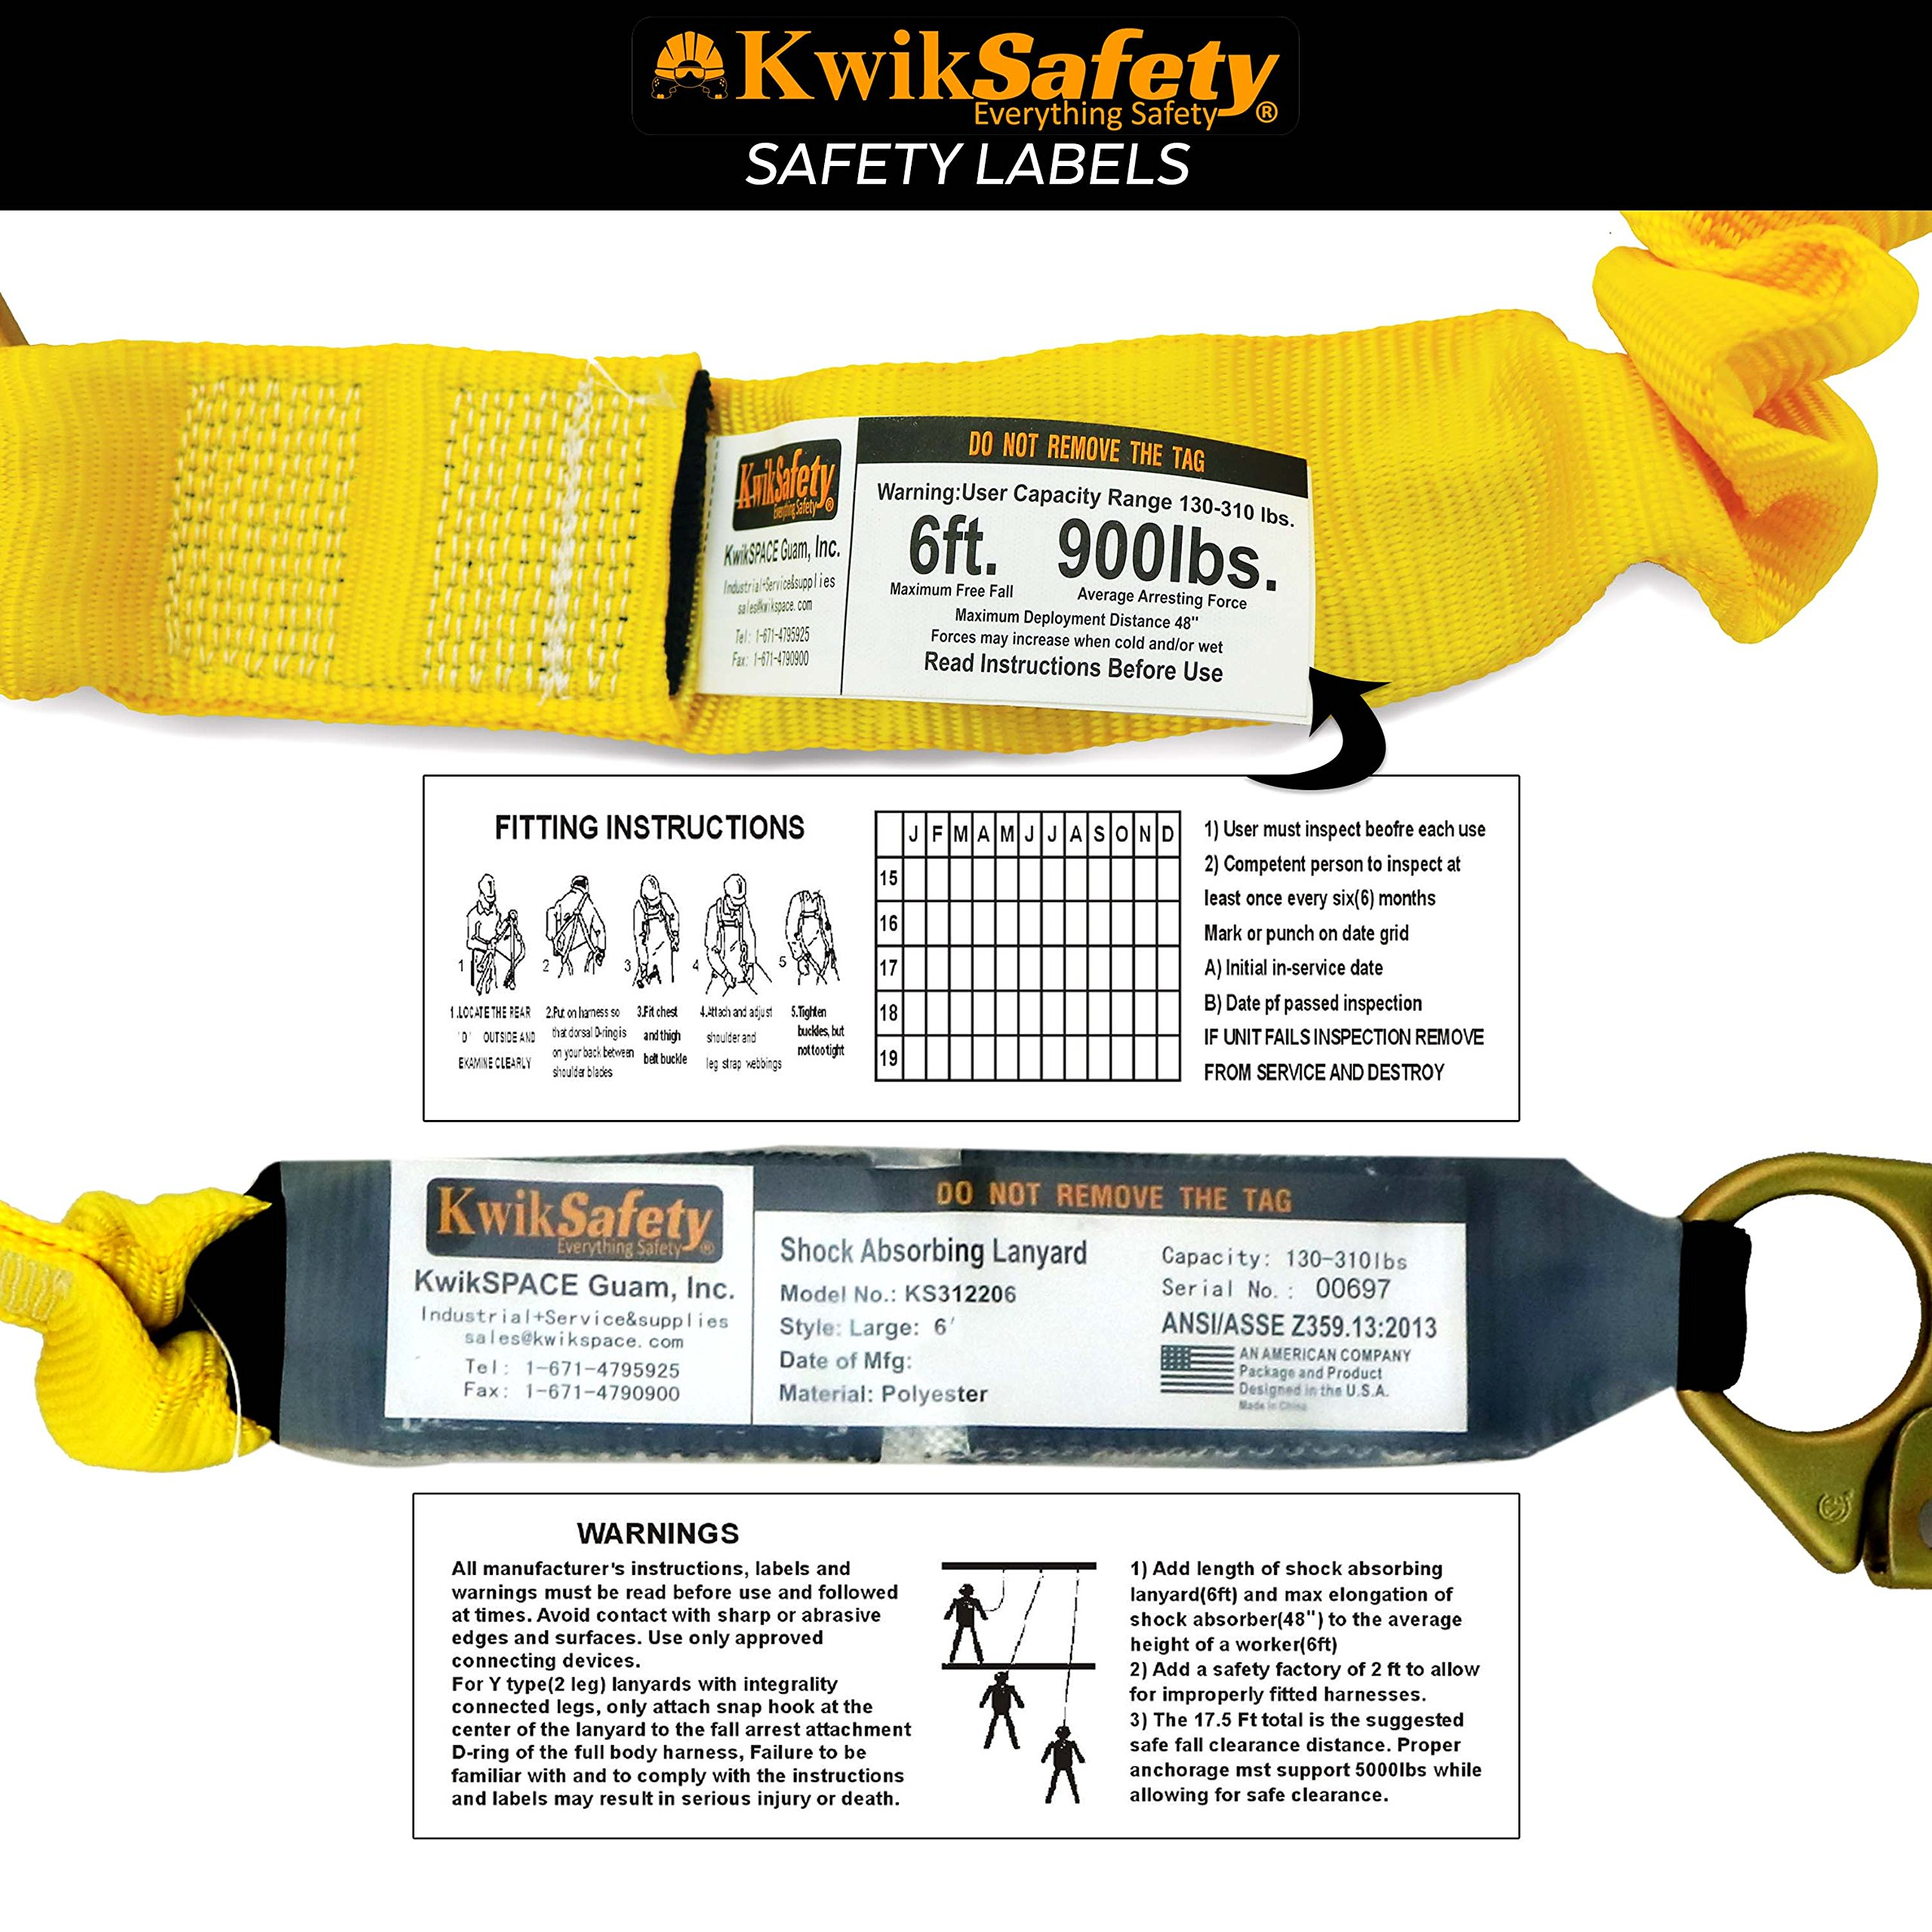 KwikSafety PYTHON   Double Leg 6ft Tubular Stretch Safety Lanyard   OSHA Approved ANSI Compliant Fall Protection   EXTERNAL Shock Absorber   Construction Arborist Roofing   Snap & Rebar Hook Connector by KwikSafety (Image #8)